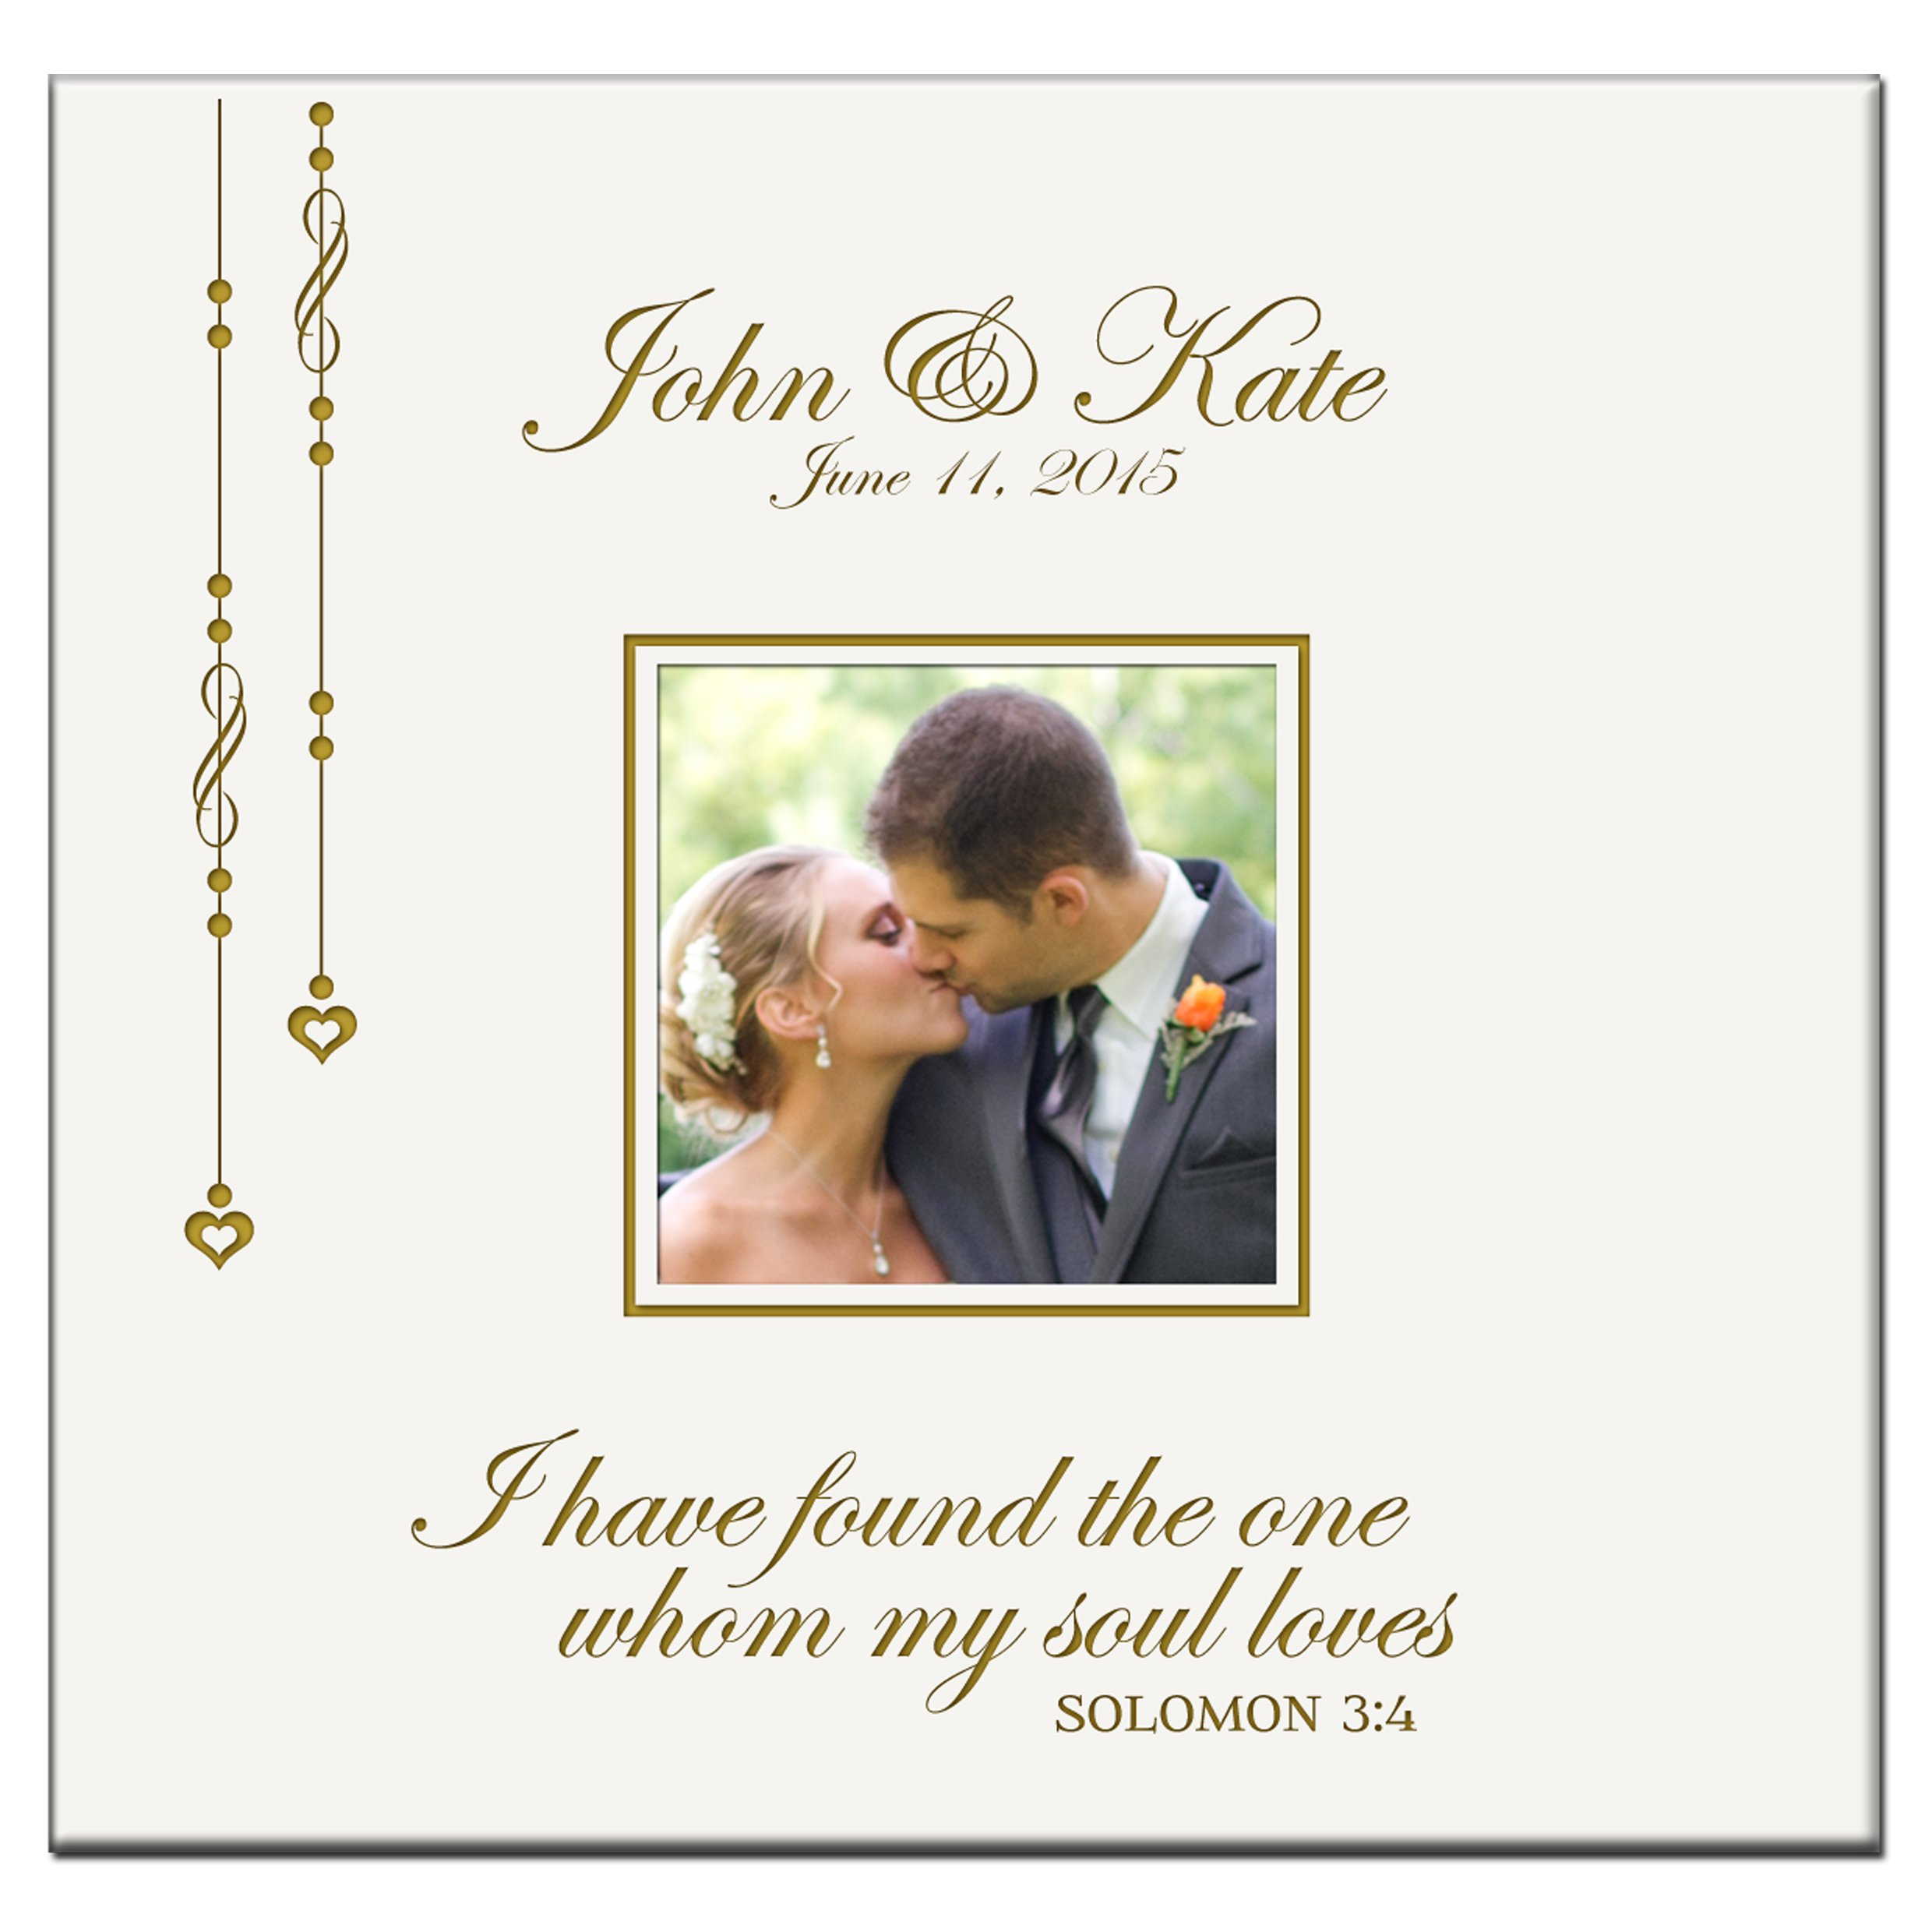 Personalized Wedding Photo Album Custom Engraved I Have Found the One Whom My Soul Loves Solomon 3:4 Photo Book Holds 200 4x6 Photos By LifeSong Milestones